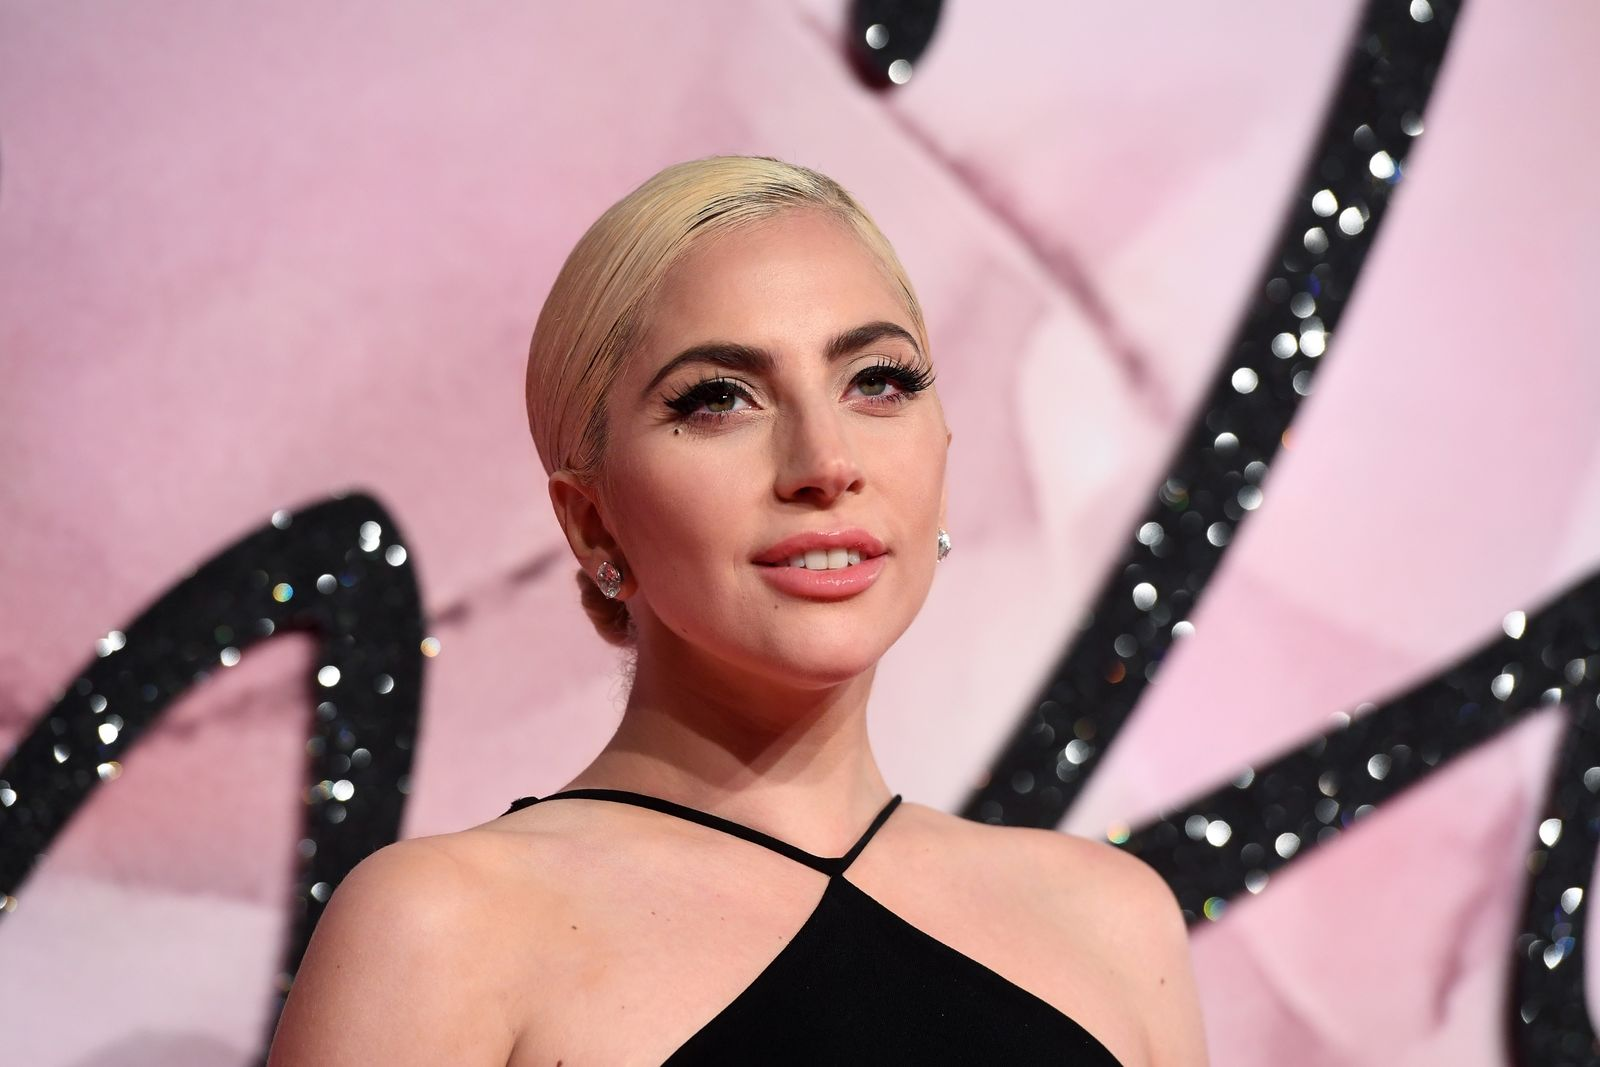 Lady Gaga at The Fashion Awards on December 5, 2016, in London, United Kingdom | Photo: Stuart C. Wilson/Getty Images